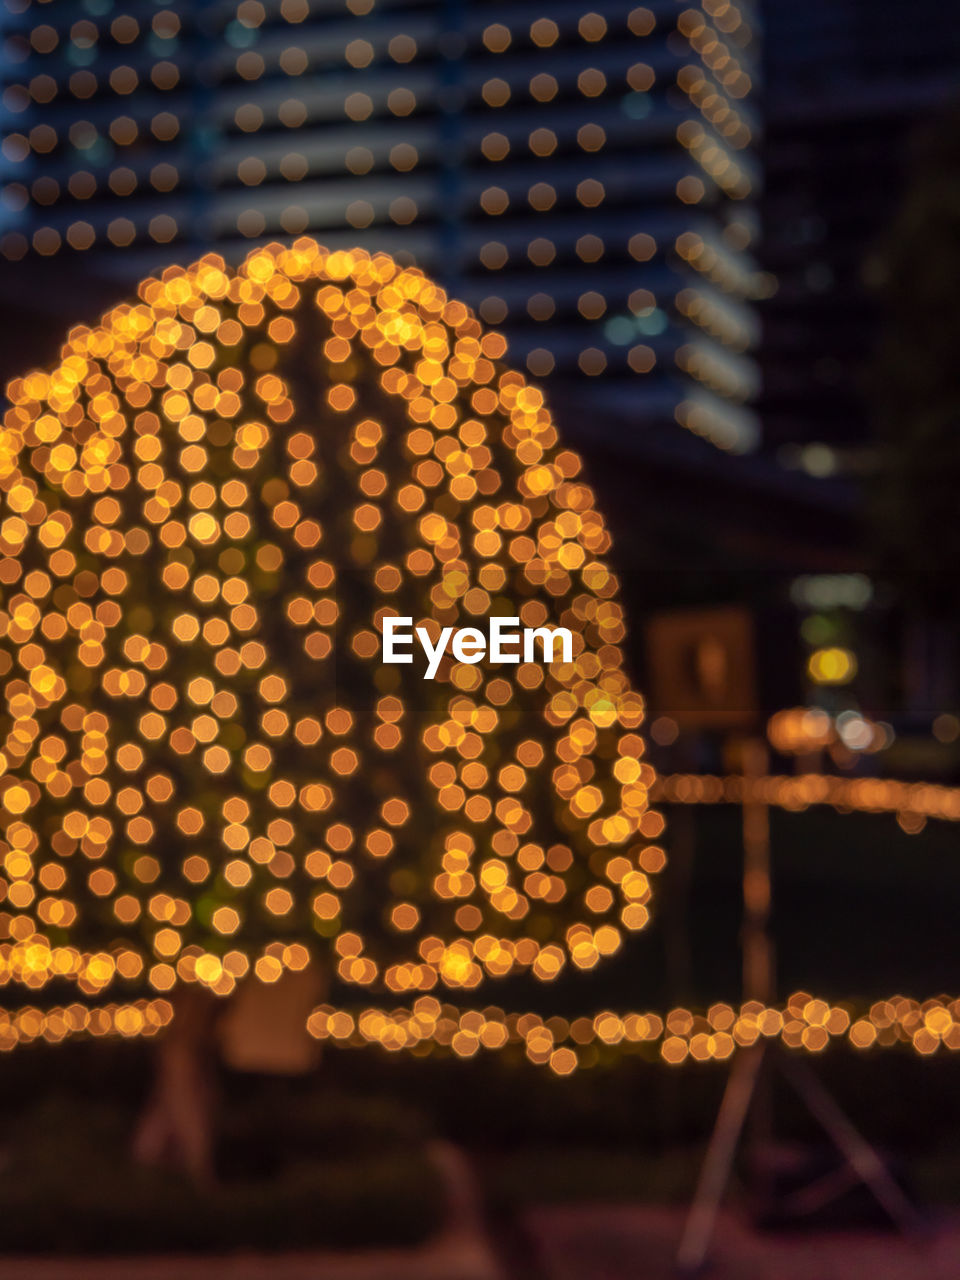 illuminated, night, architecture, focus on foreground, glowing, real people, christmas lights, lighting equipment, decoration, built structure, defocused, building exterior, shape, city, celebration, lifestyles, christmas, christmas decoration, pattern, outdoors, light